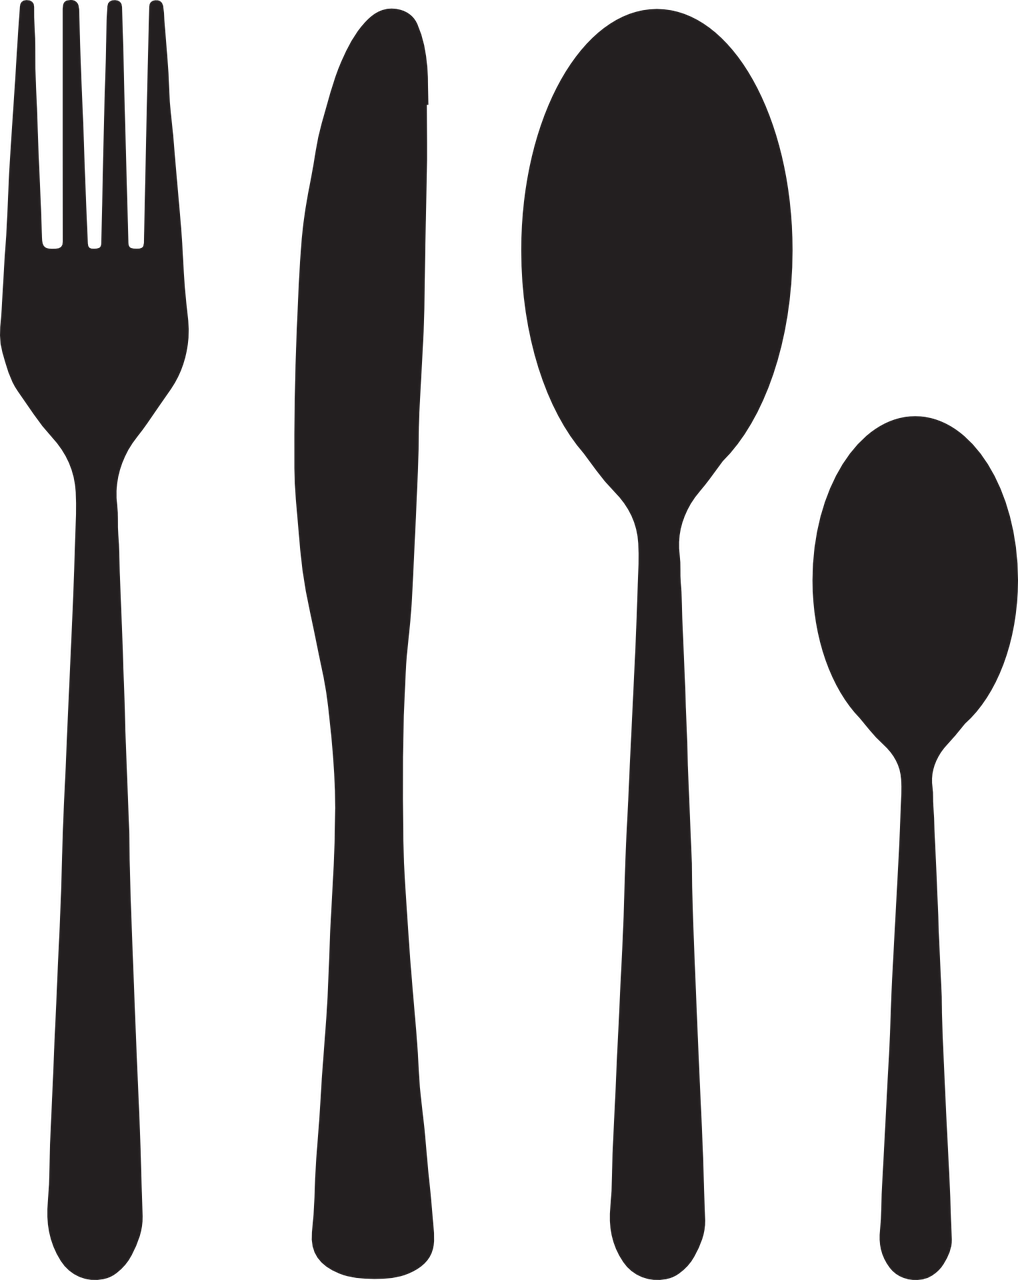 cutlery-786745_1280.png